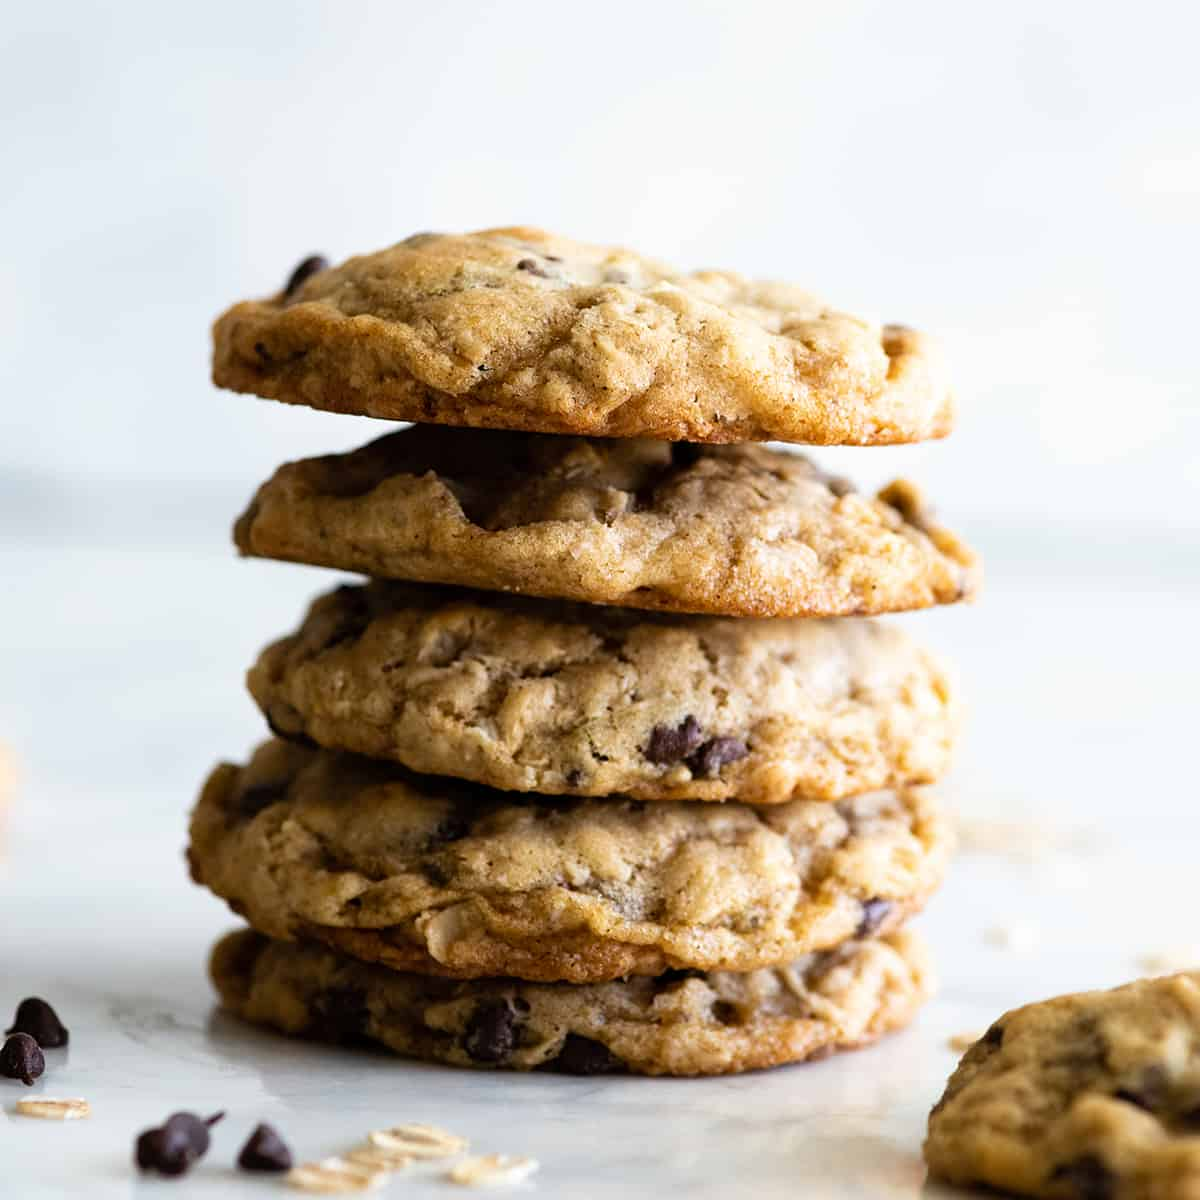 stack of 5 oatmeal cookies with chocolate chips